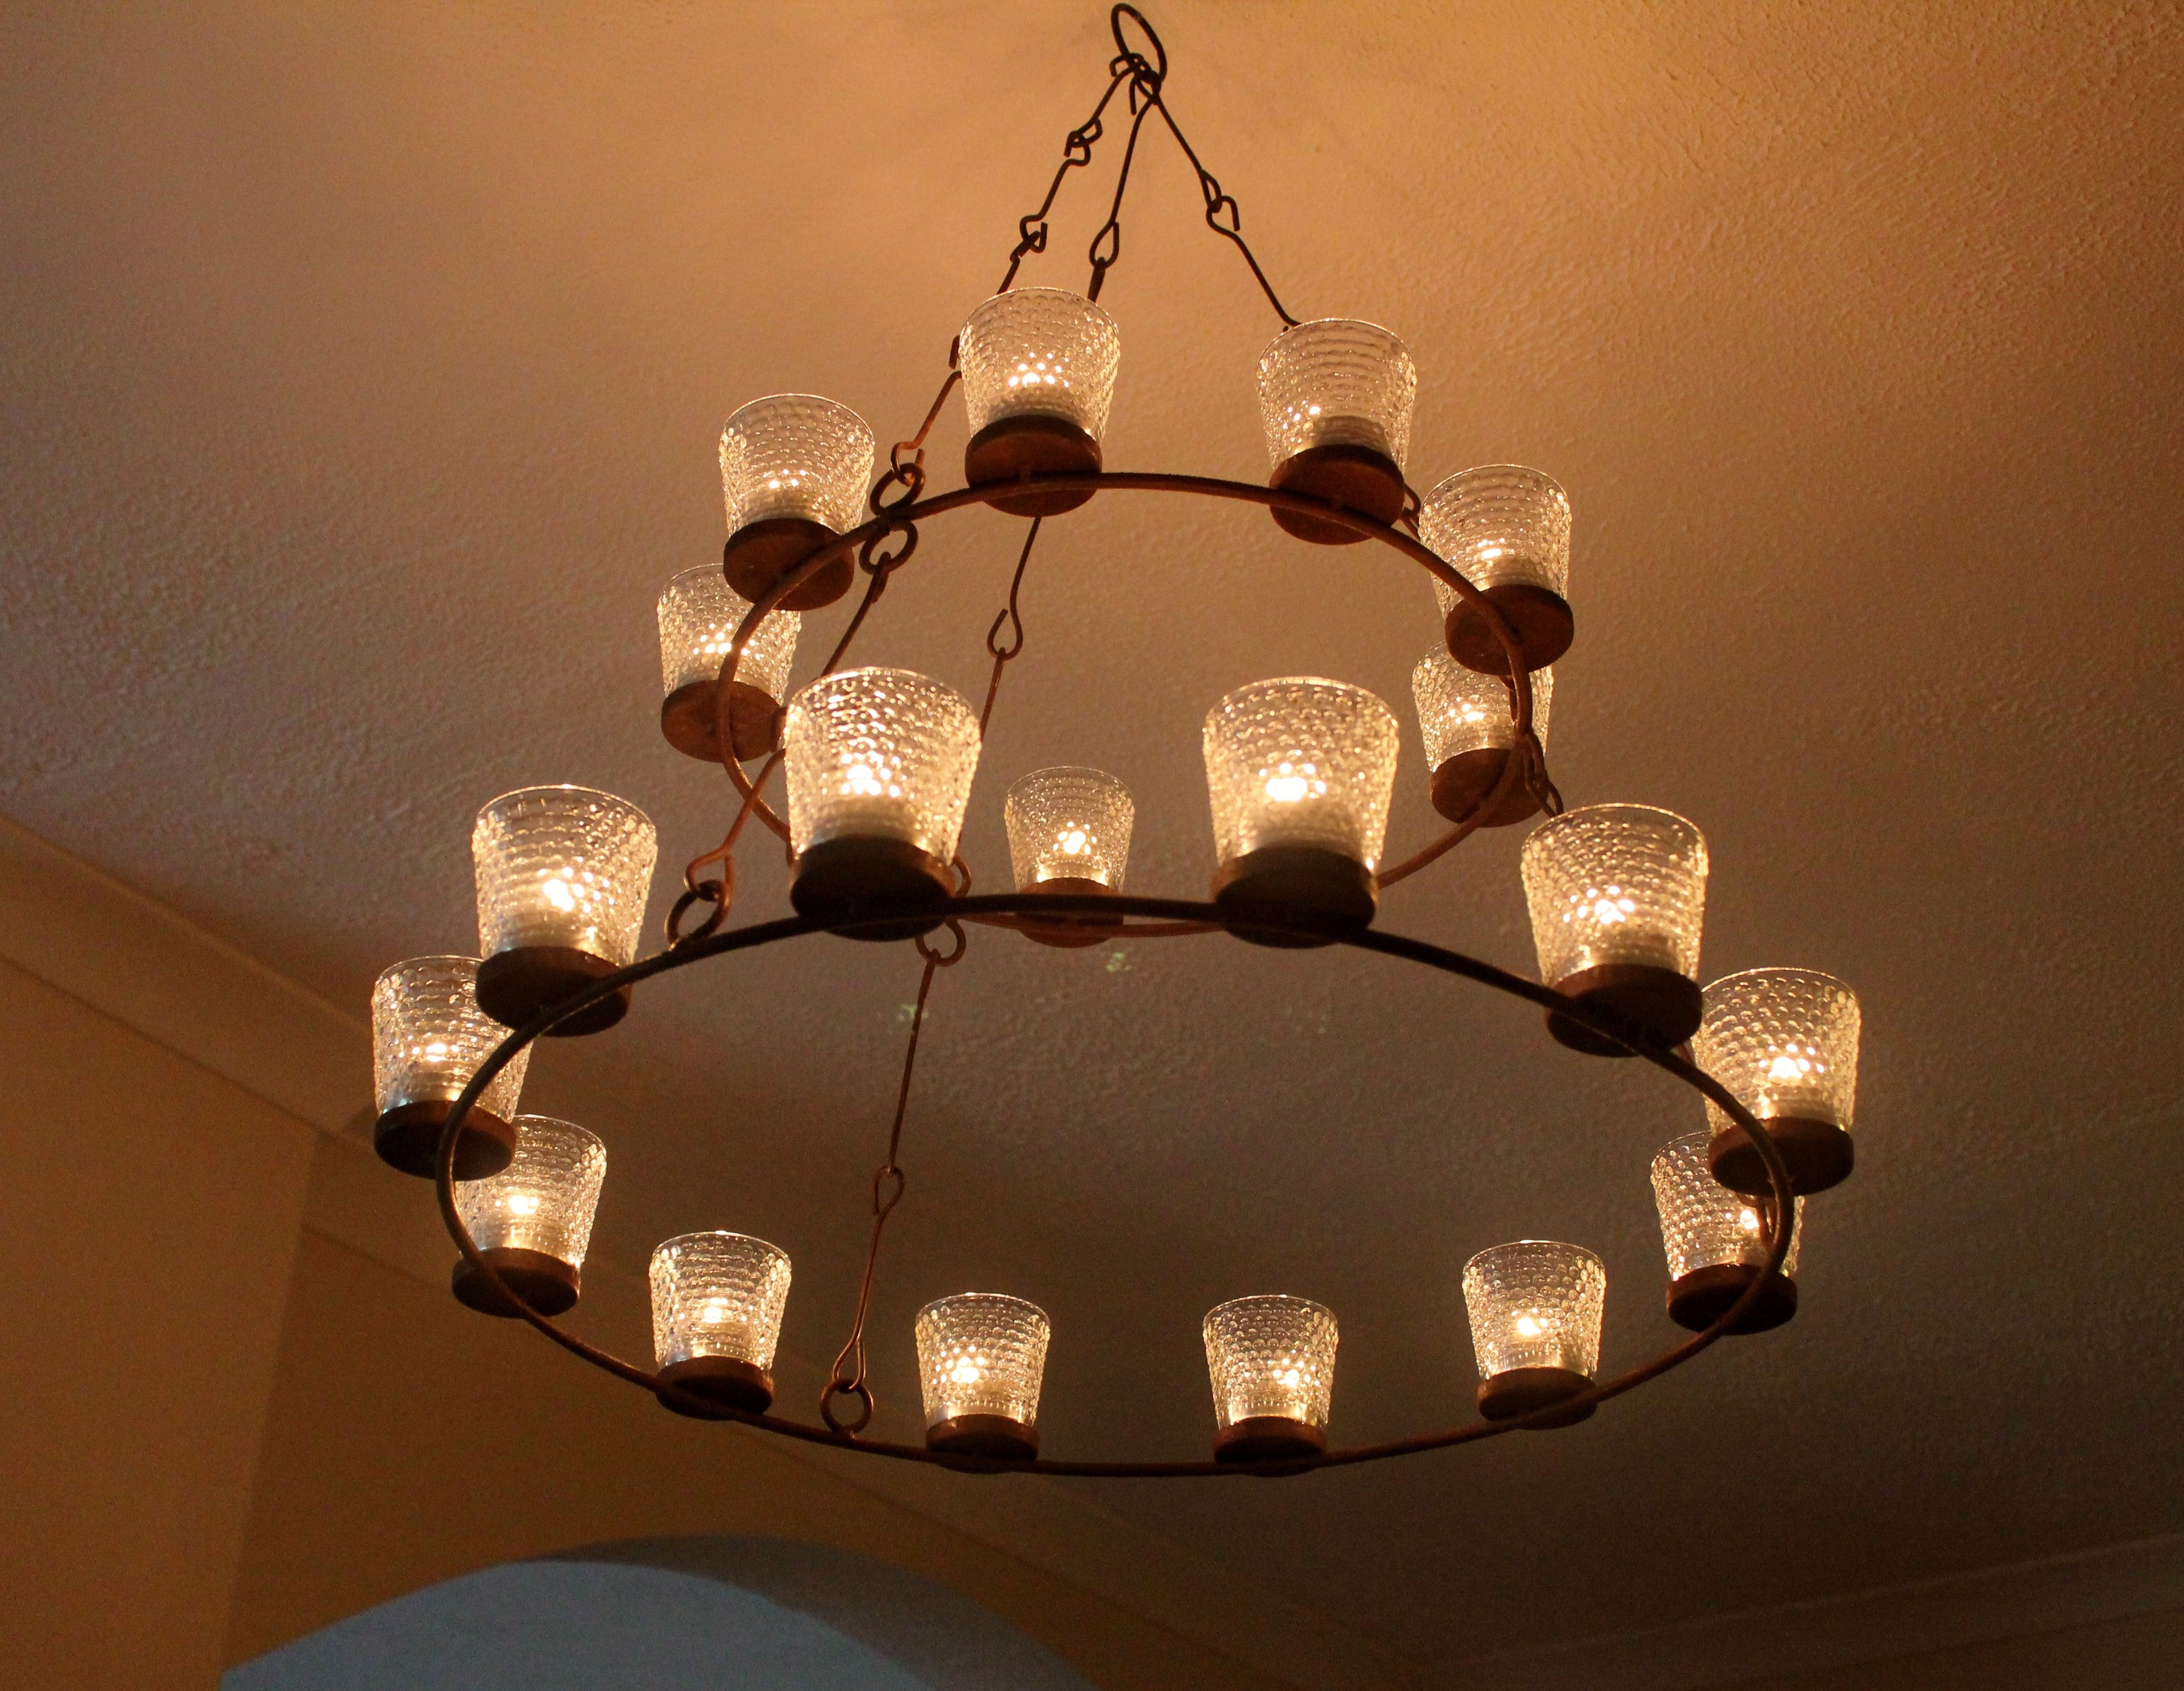 My Tealight Chandelier With Images Tea Lights Chandelier Home Decor